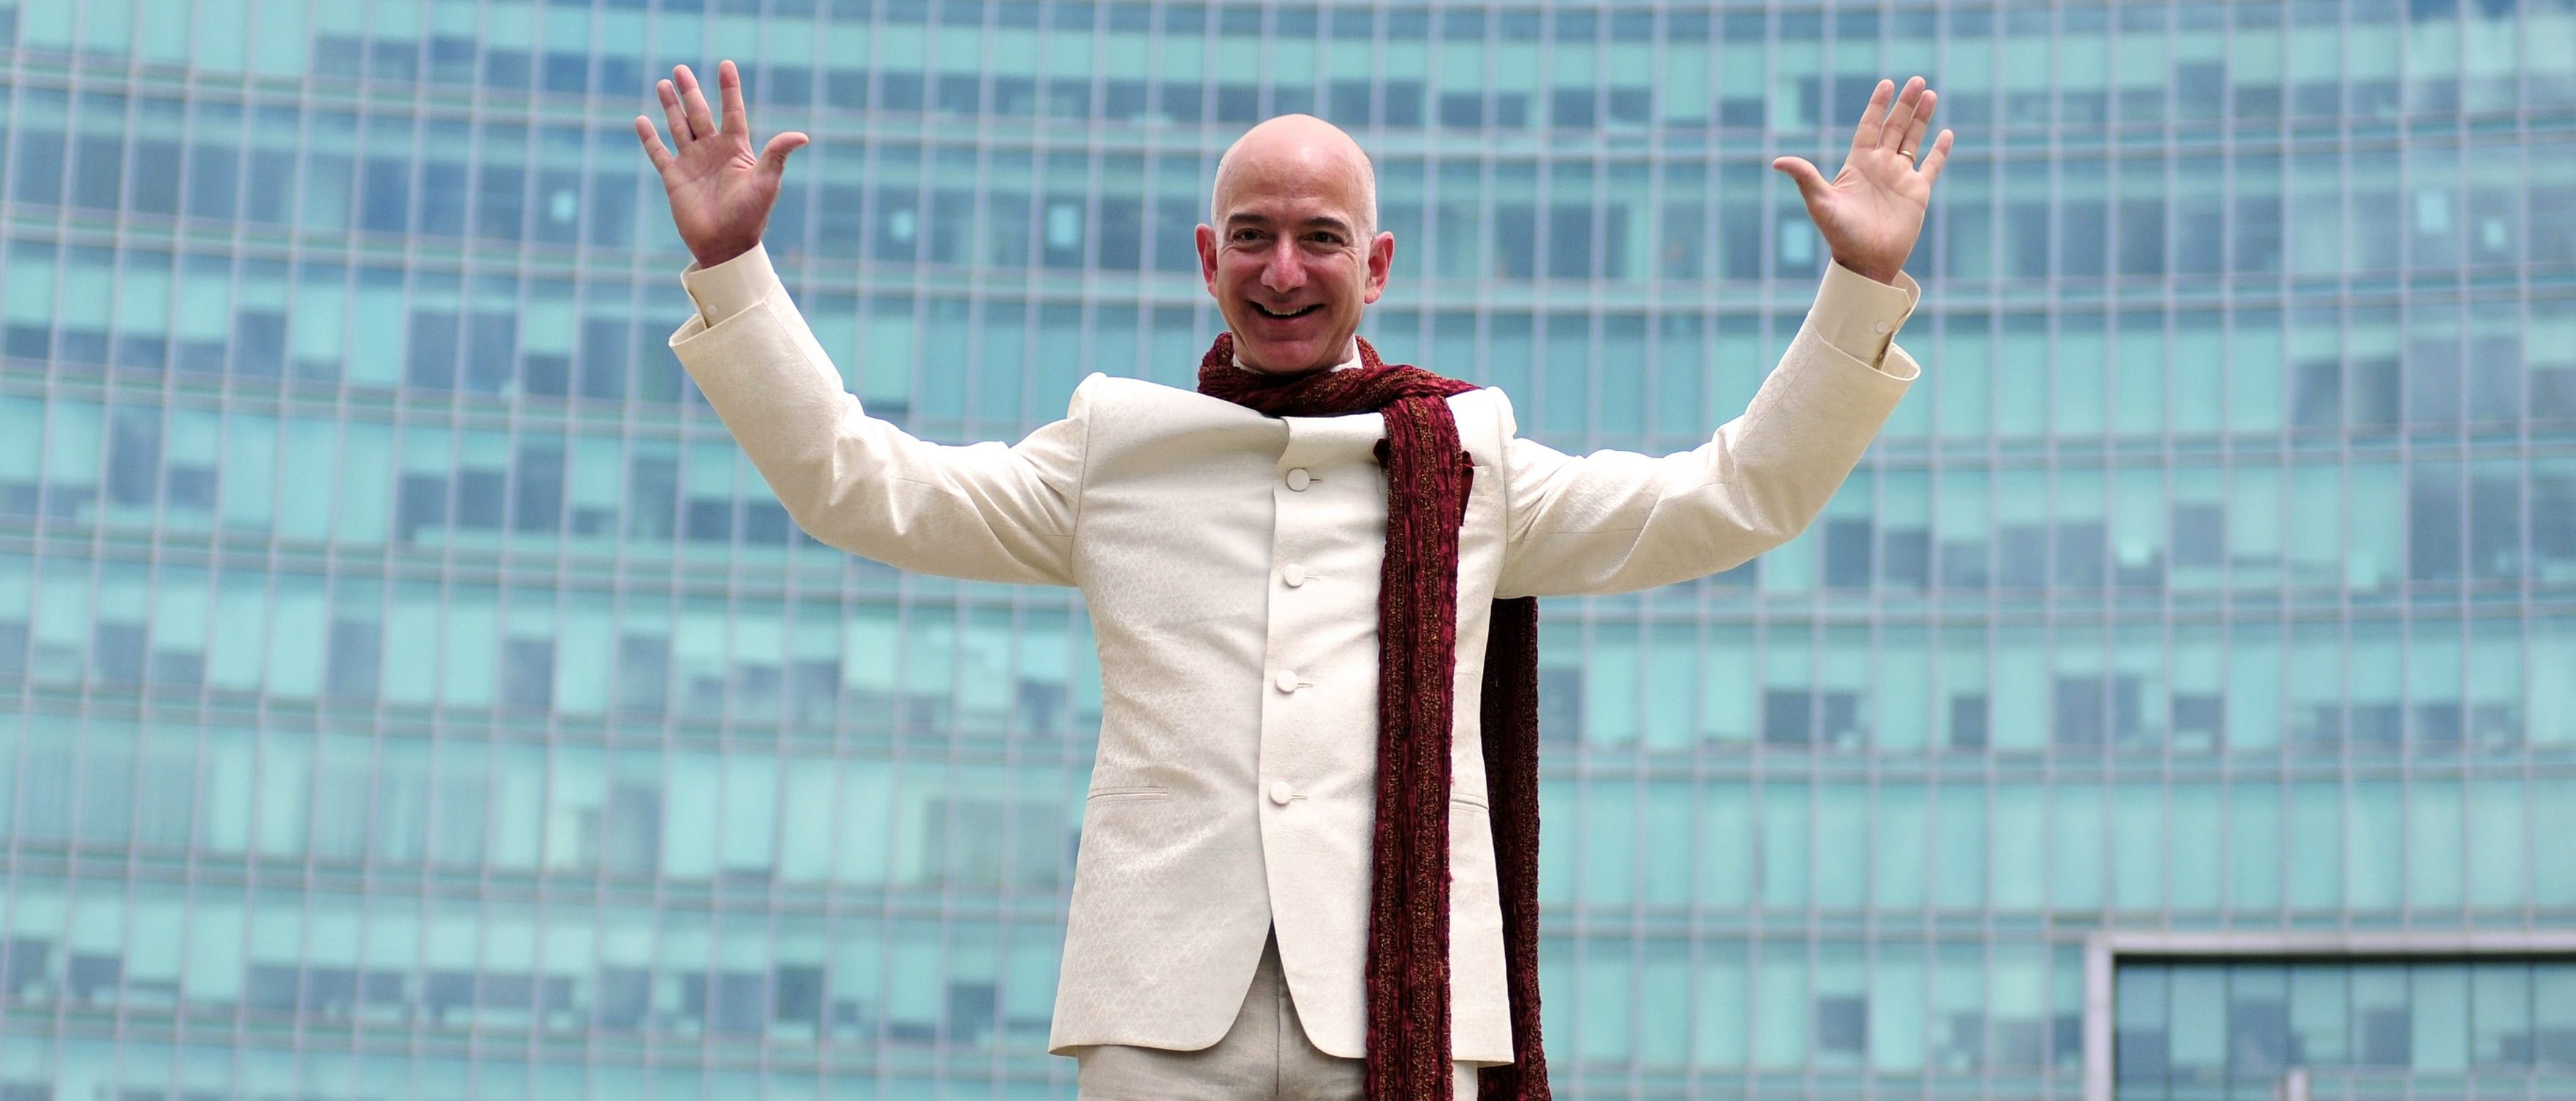 Jeff Bezos, founder and chief executive officer of Amazon, poses as he stands atop a supply truck during a photo opportunity at the premises of a shopping mall in the southern Indian city of Bangalore September 28, 2014.